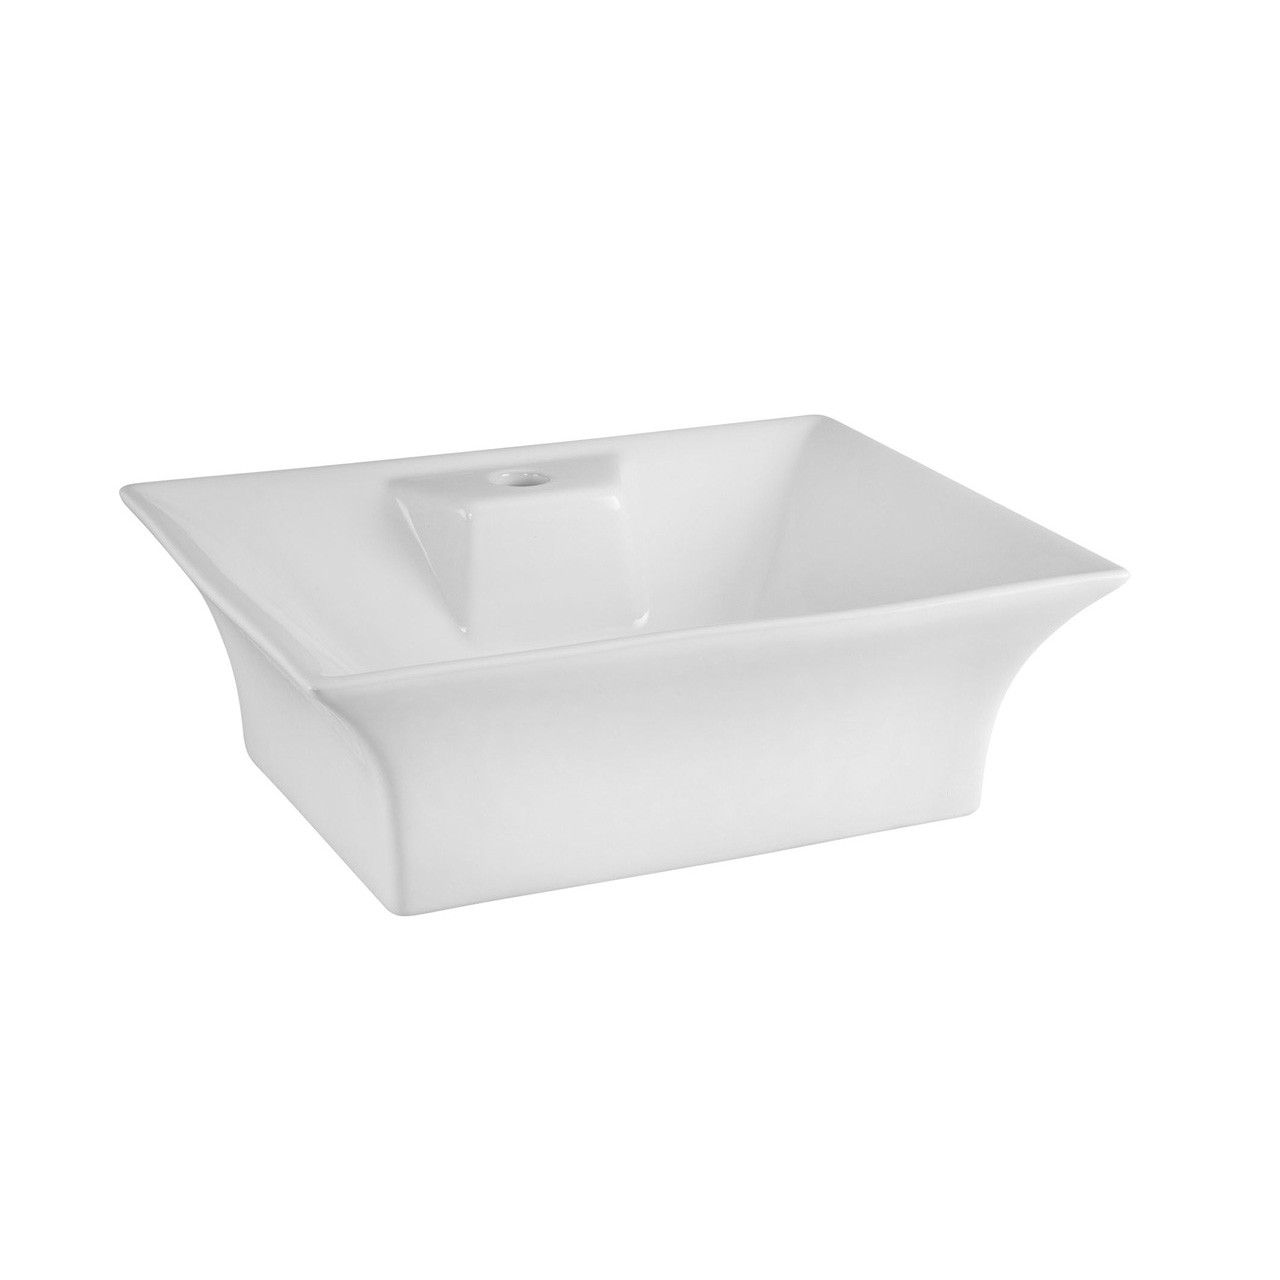 Nuie 480mm Rectangular Counter Top Basin with 1 Tap Hole - NBV005